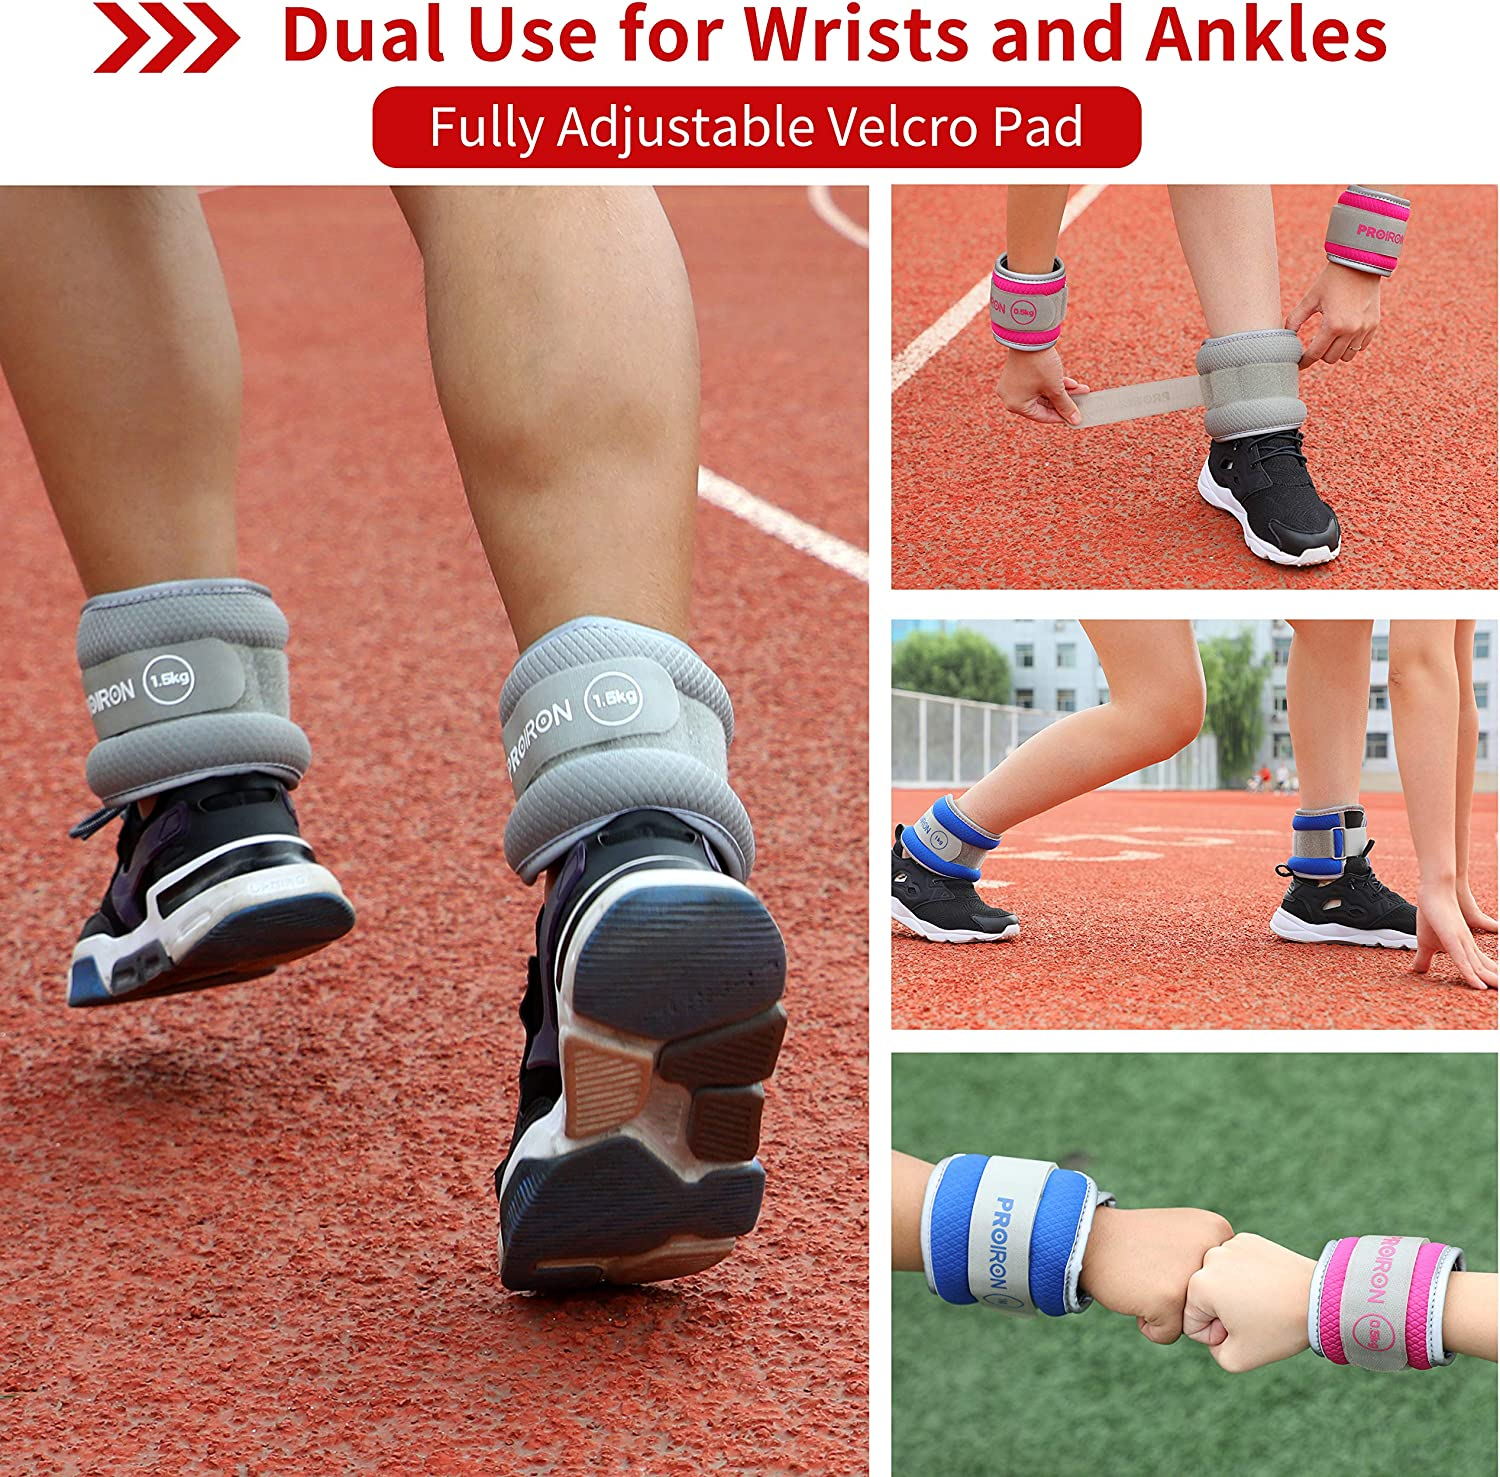 PROIRON Ankle Weights Wrist Leg Weights for Women Men 0.5kg-2kg in Pair Reflective Ankle Weight Set for Fitness Exercise Jogging Aerobics